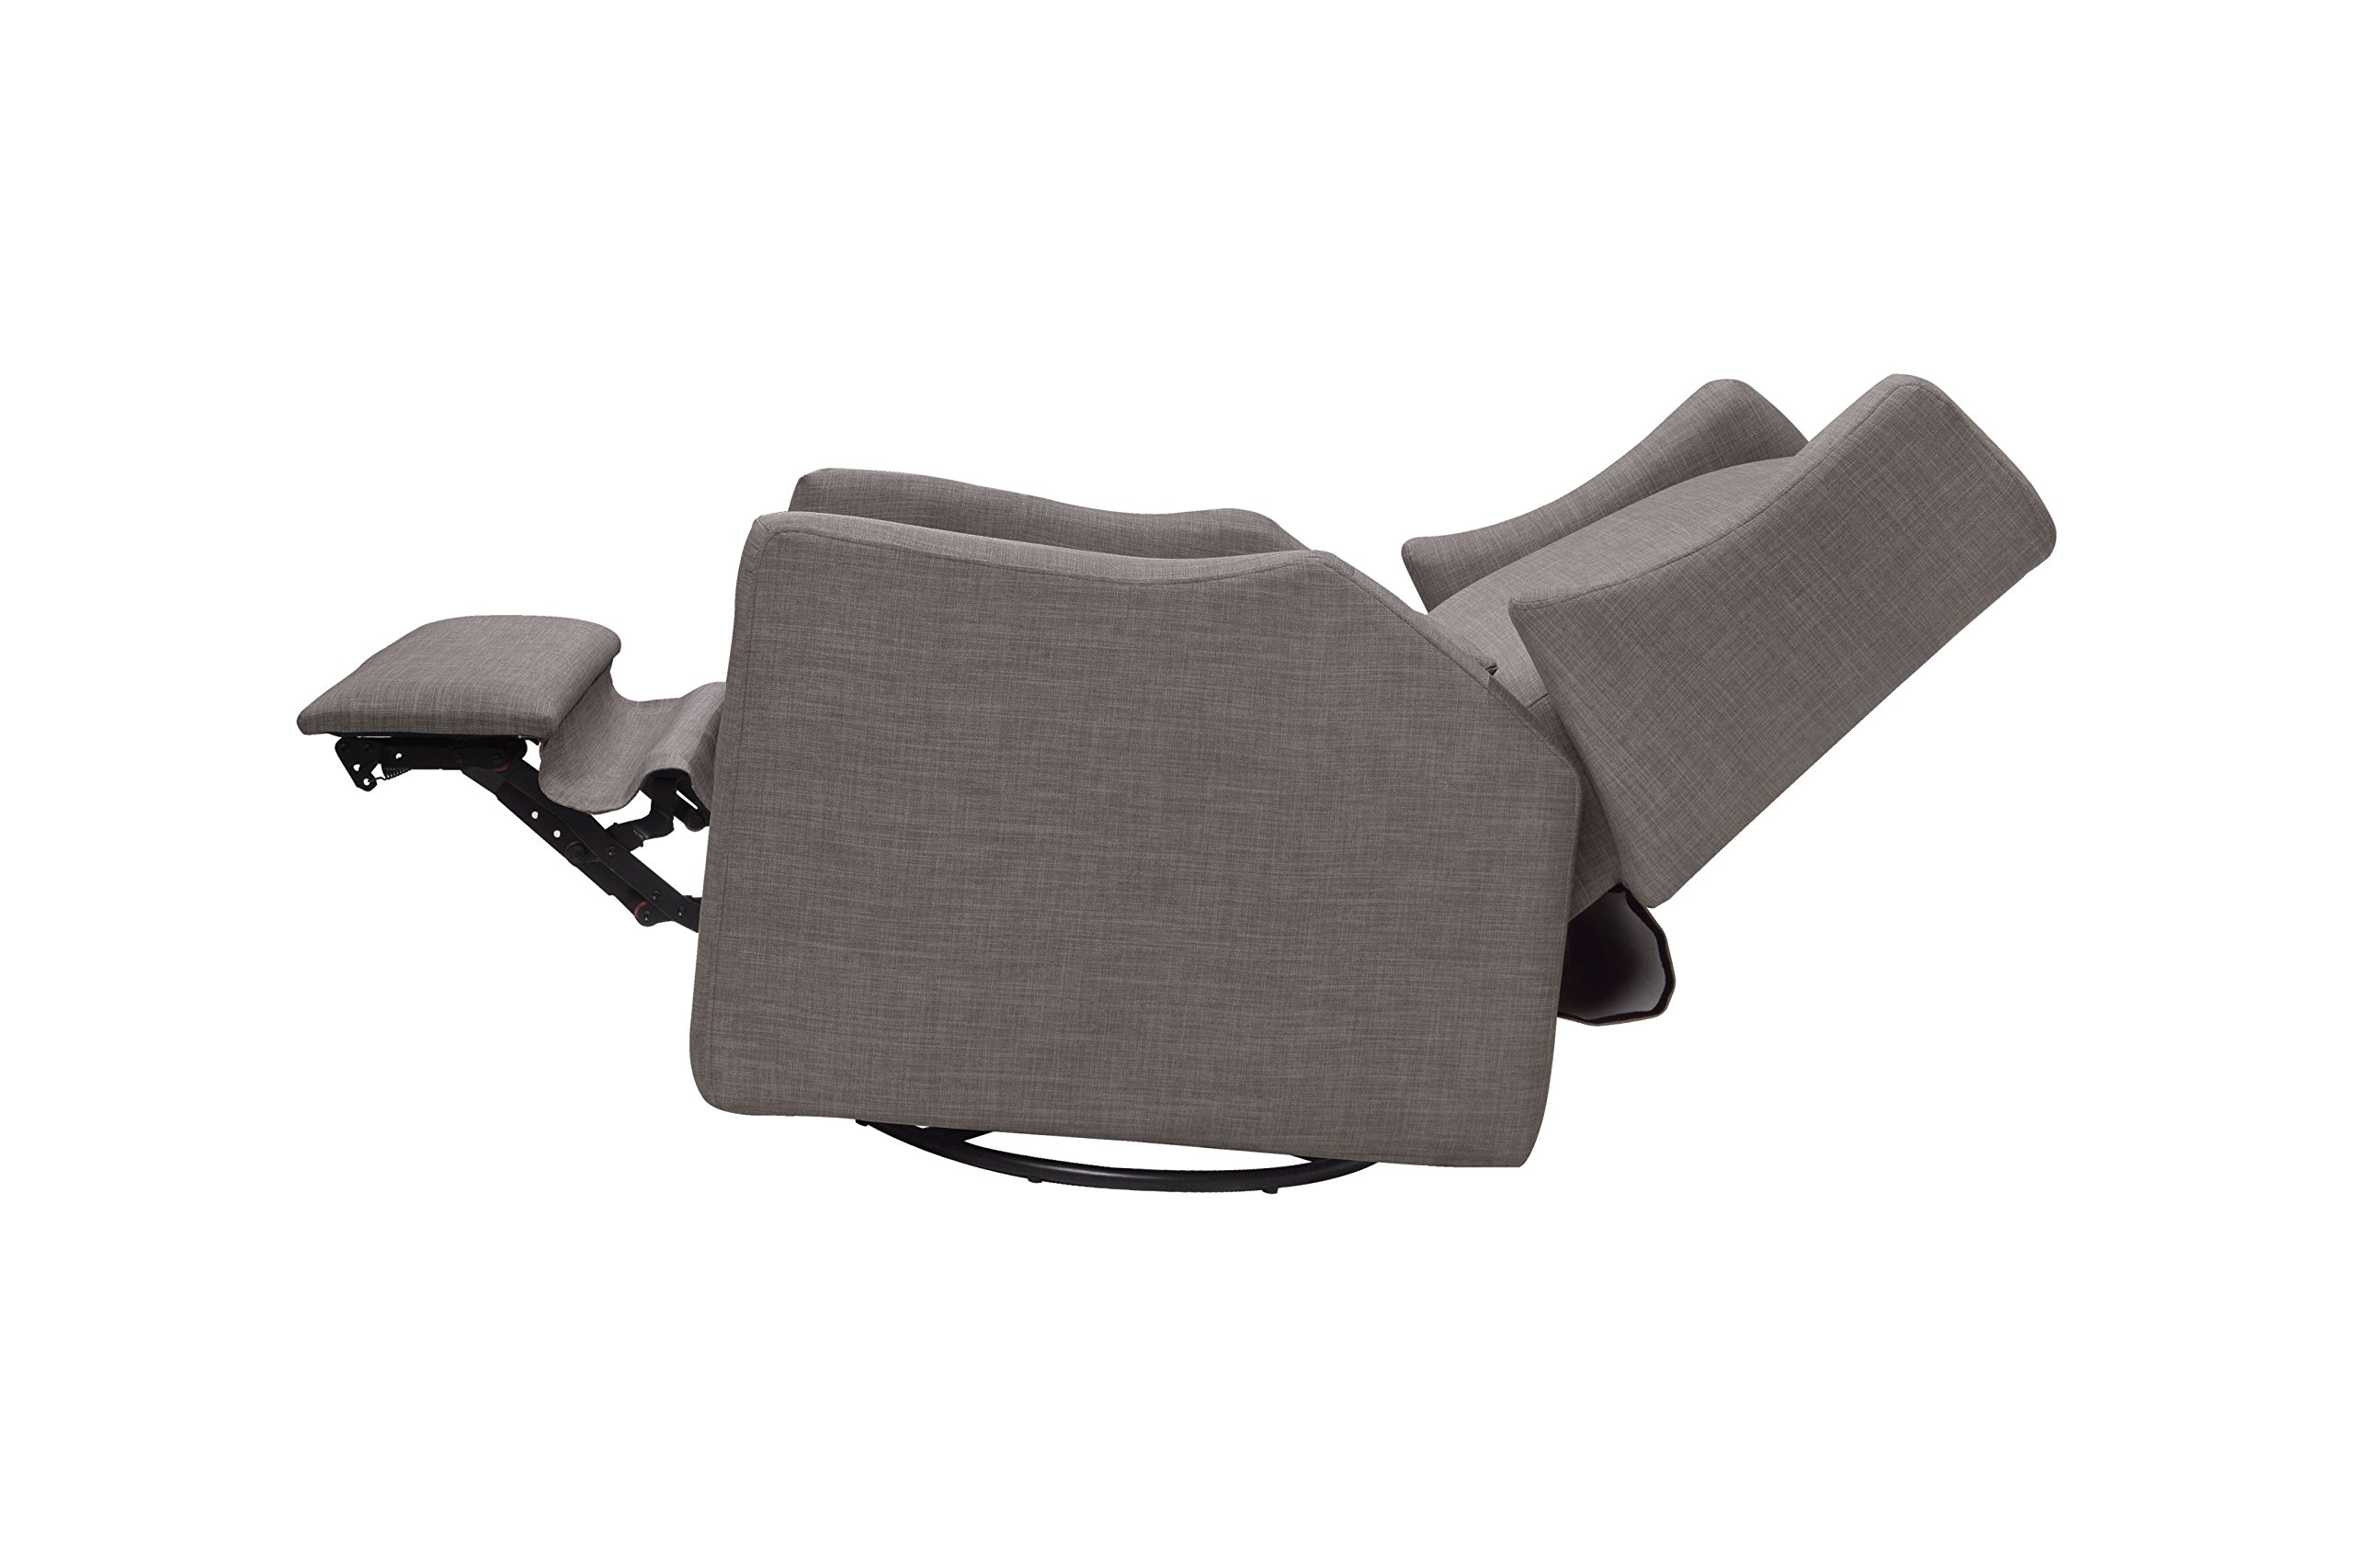 Babyletto Kiwi Electronic Recliner and Swivel Glider with USB Port, Grey Tweed by babyletto (Image #9)